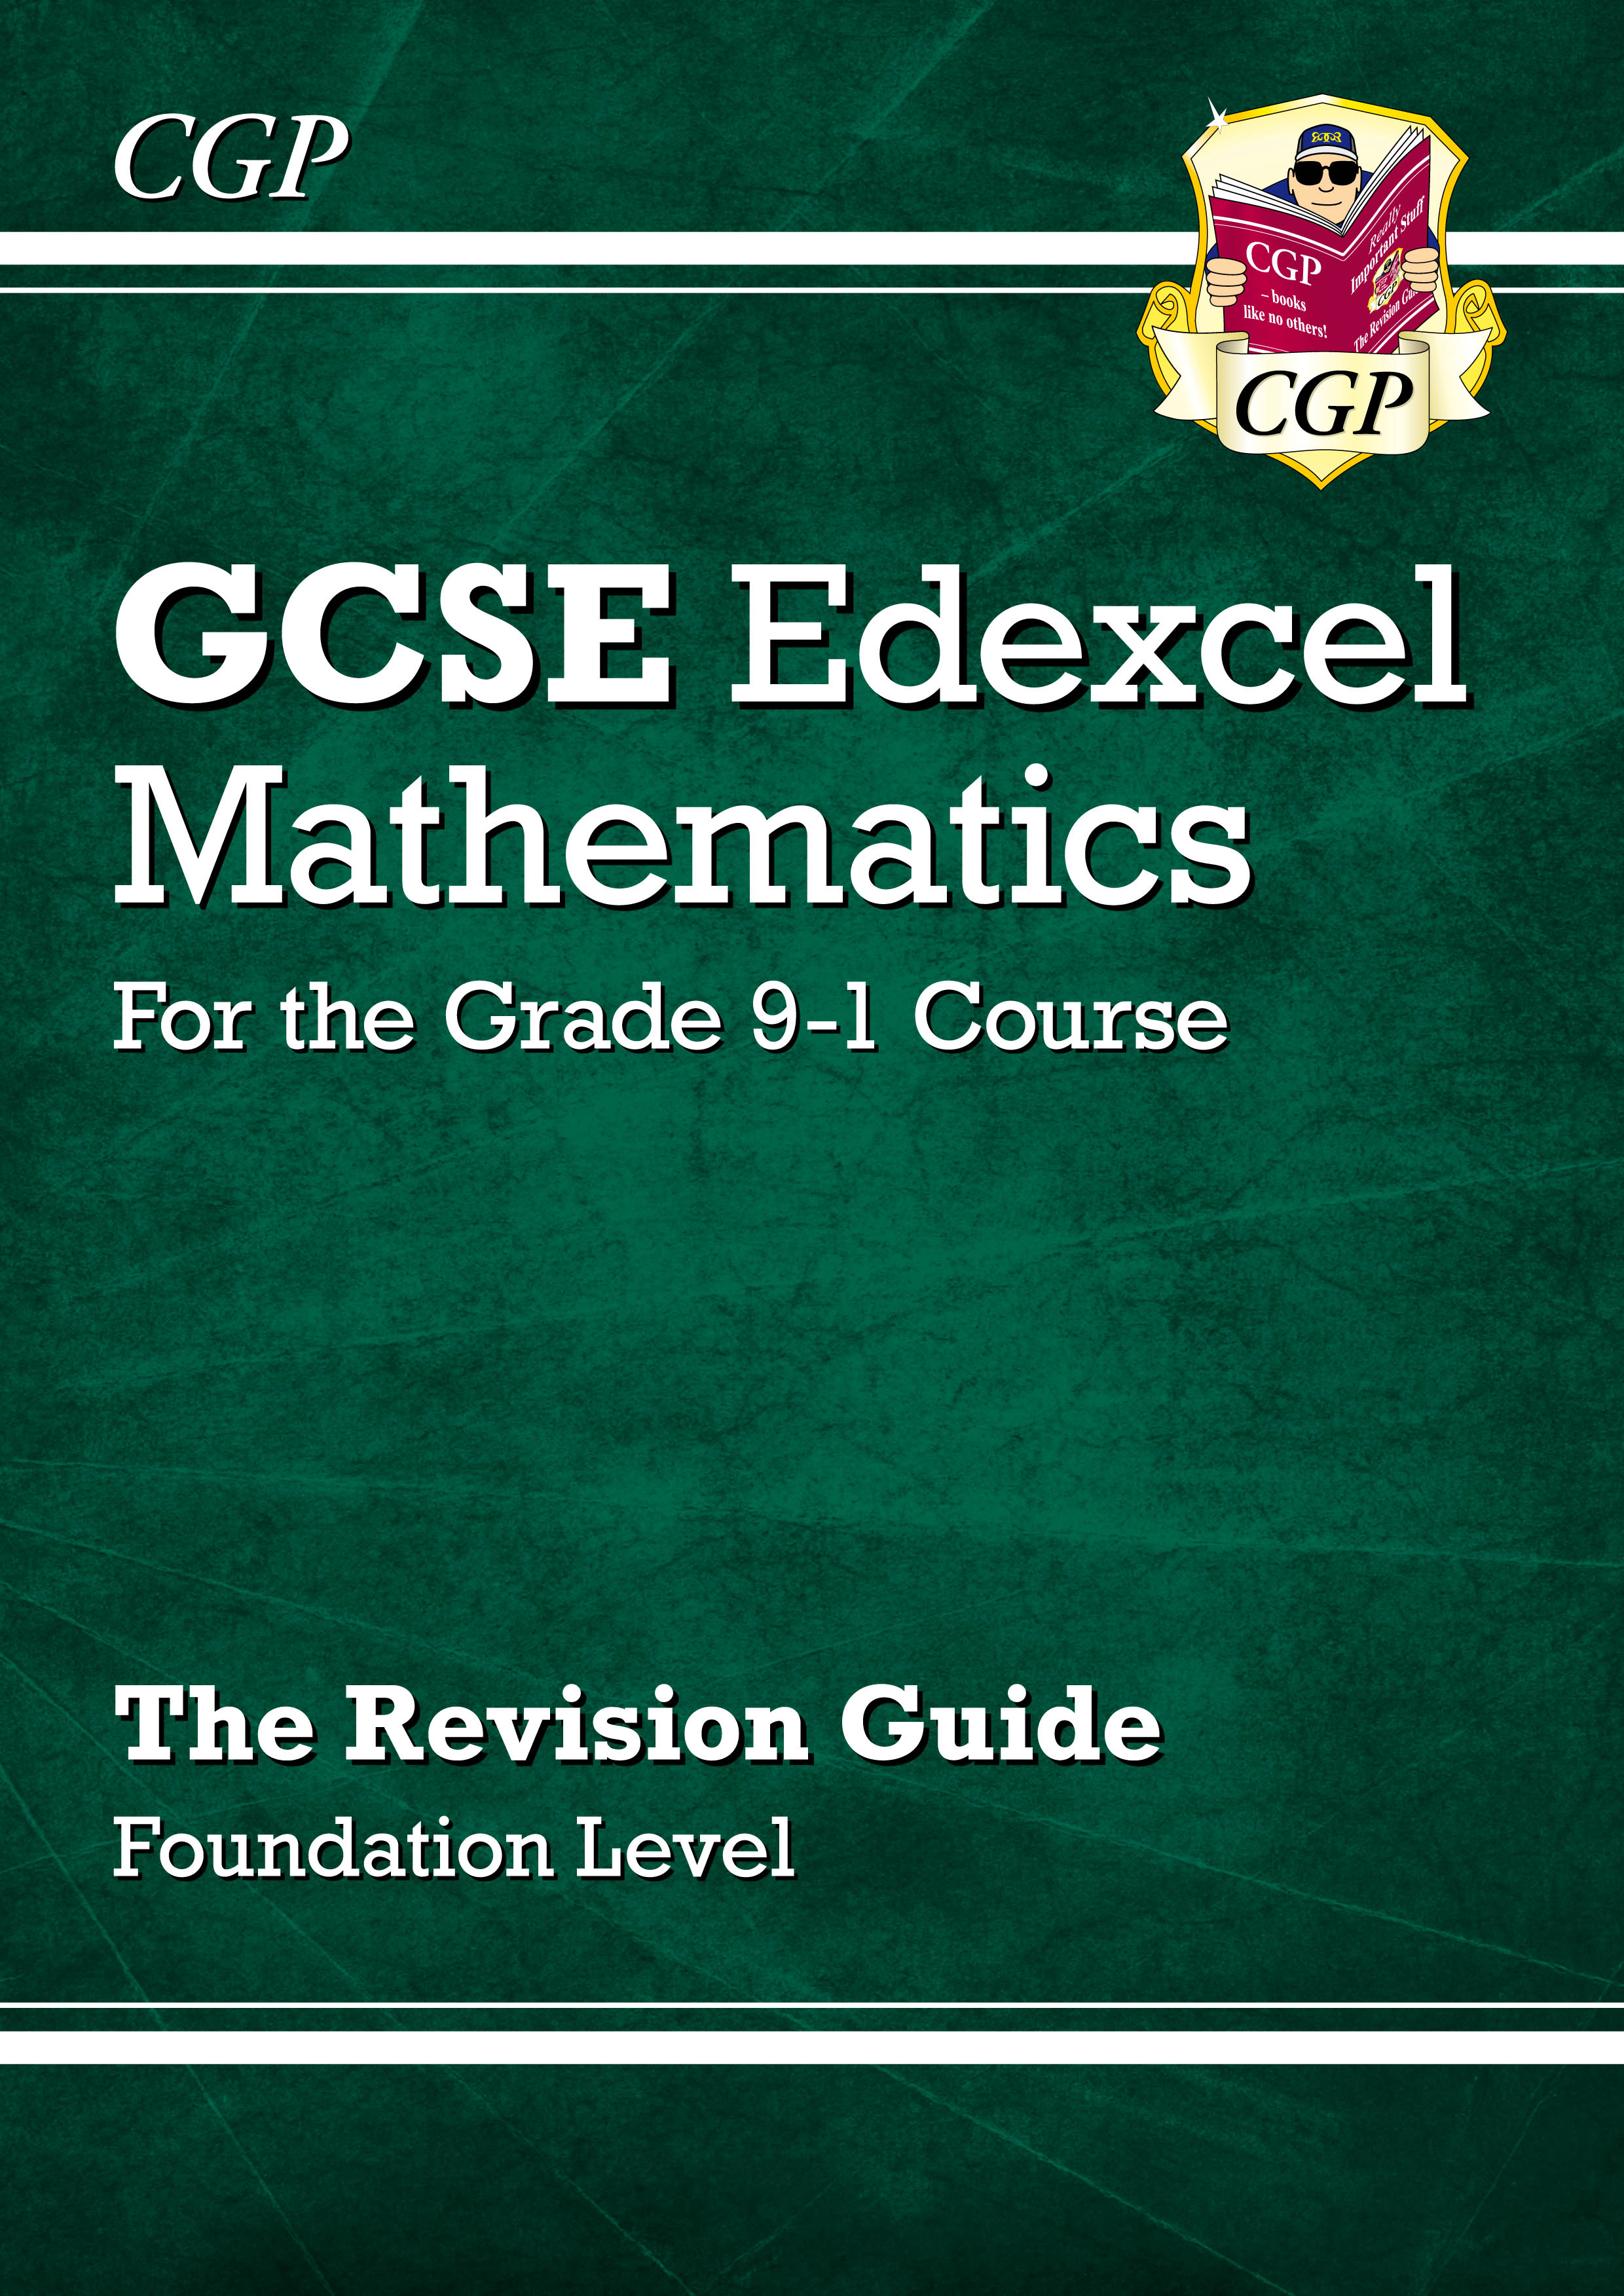 MXFR46DK - GCSE Maths Edexcel Revision Guide: Foundation - for the Grade 9-1 Course